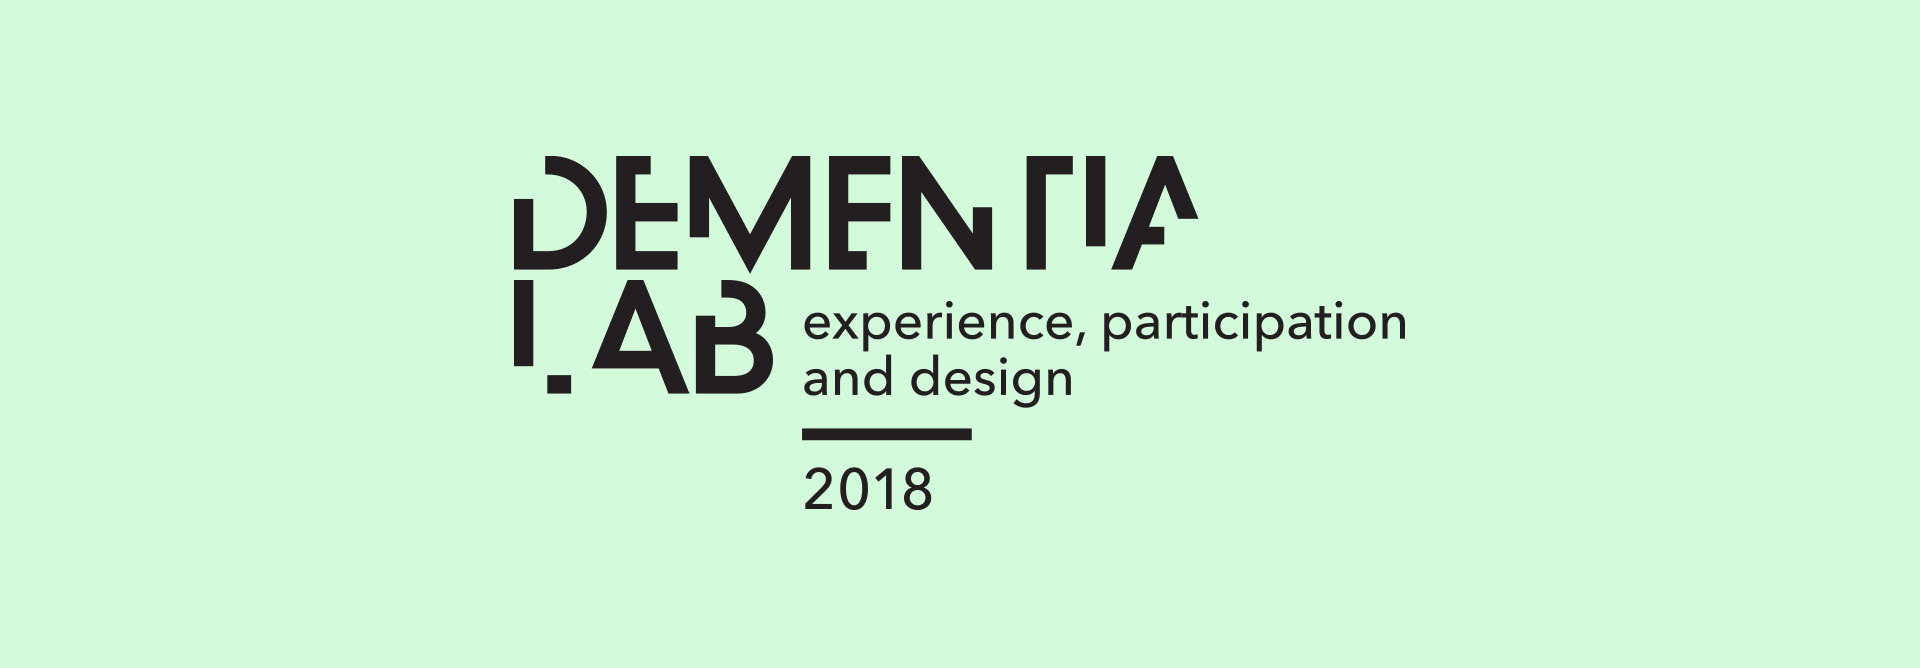 CoCreate-DementiaLab2018